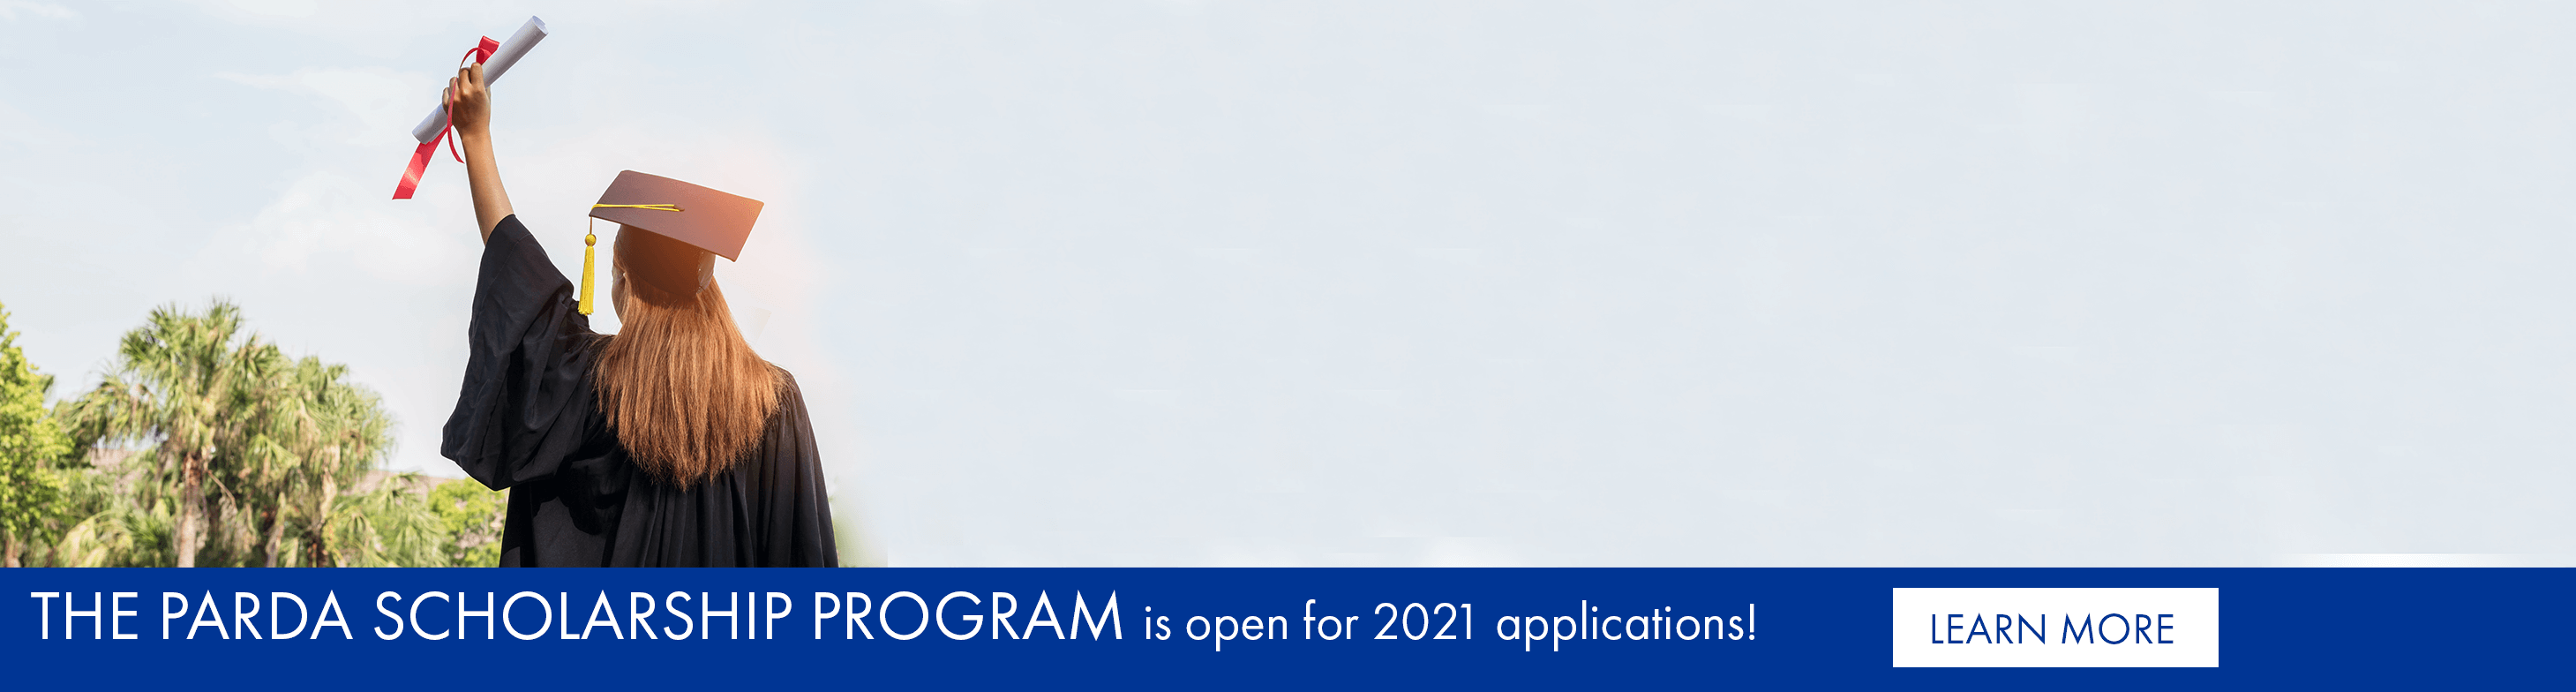 The PARDA scholarship program is open for 2021 applications!